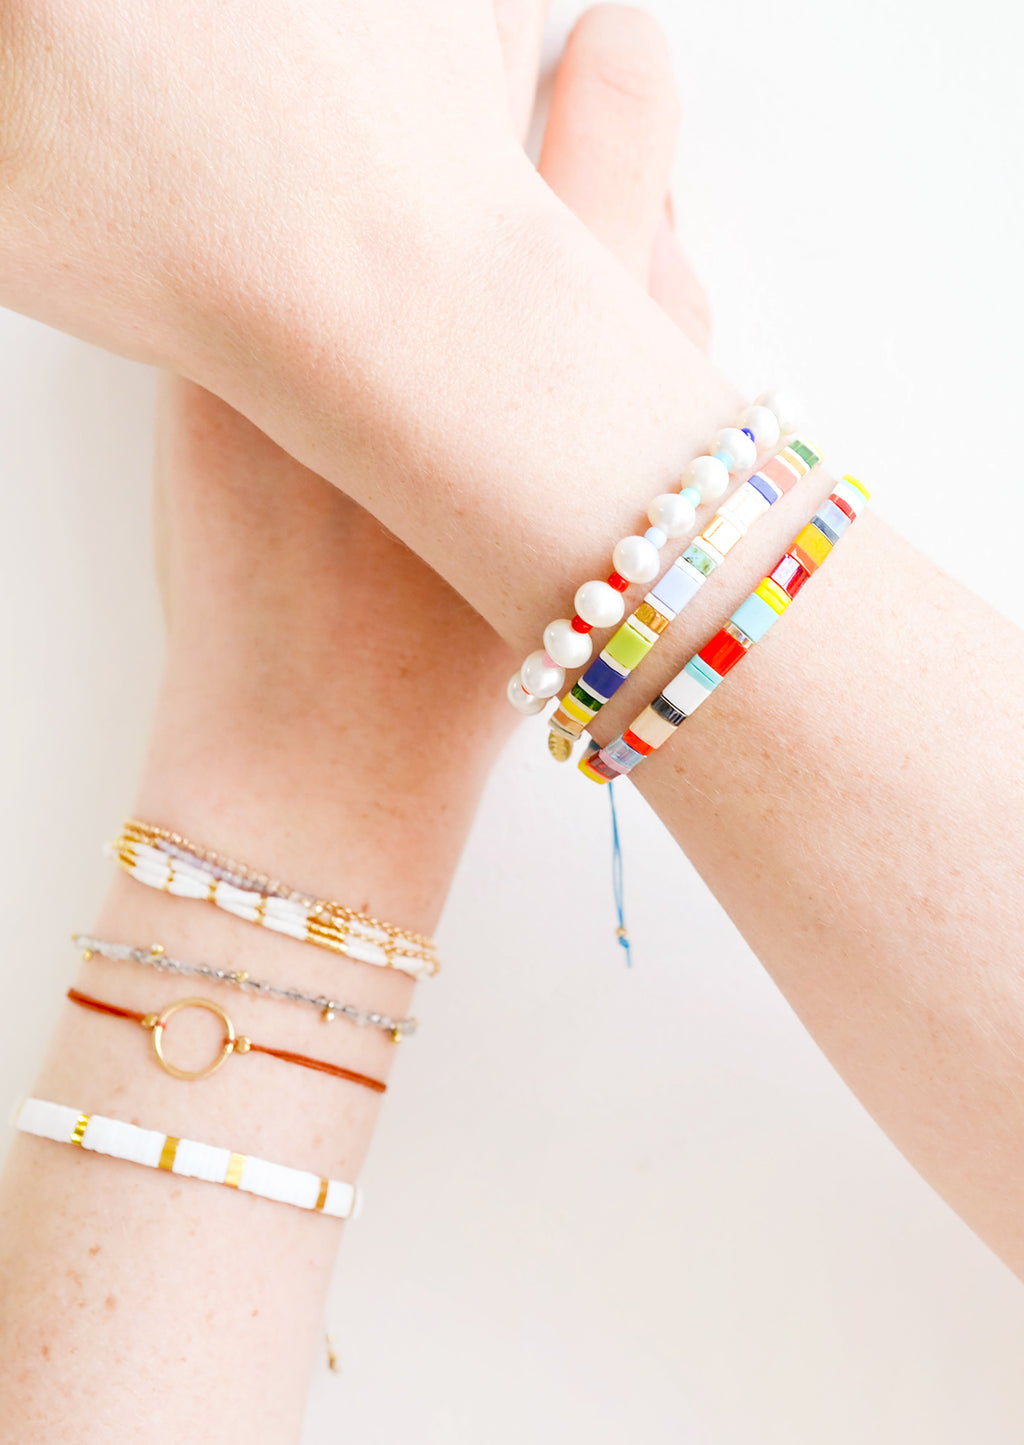 6: Model shot showing wrists with multiple styles of bracelets.